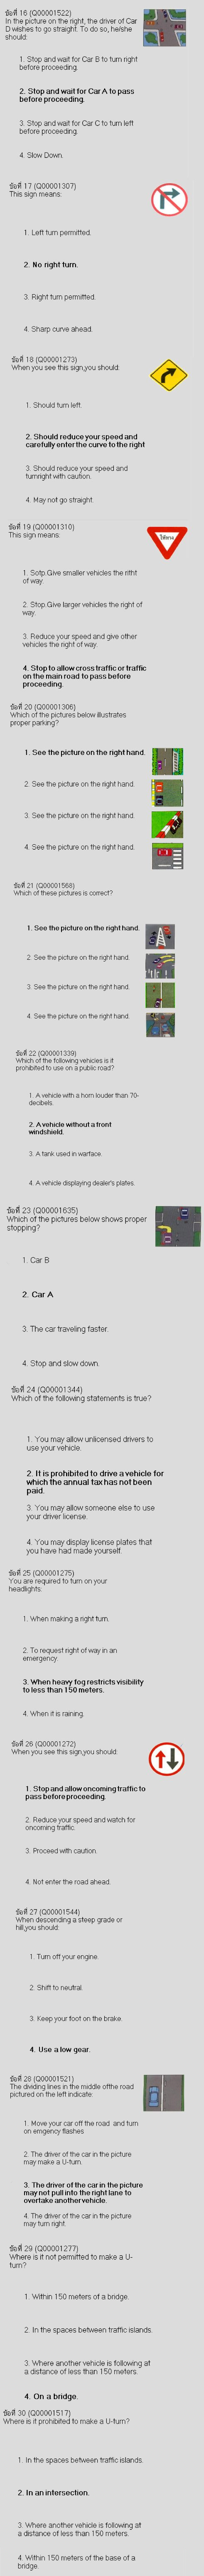 thai driving test exam questions 2.5